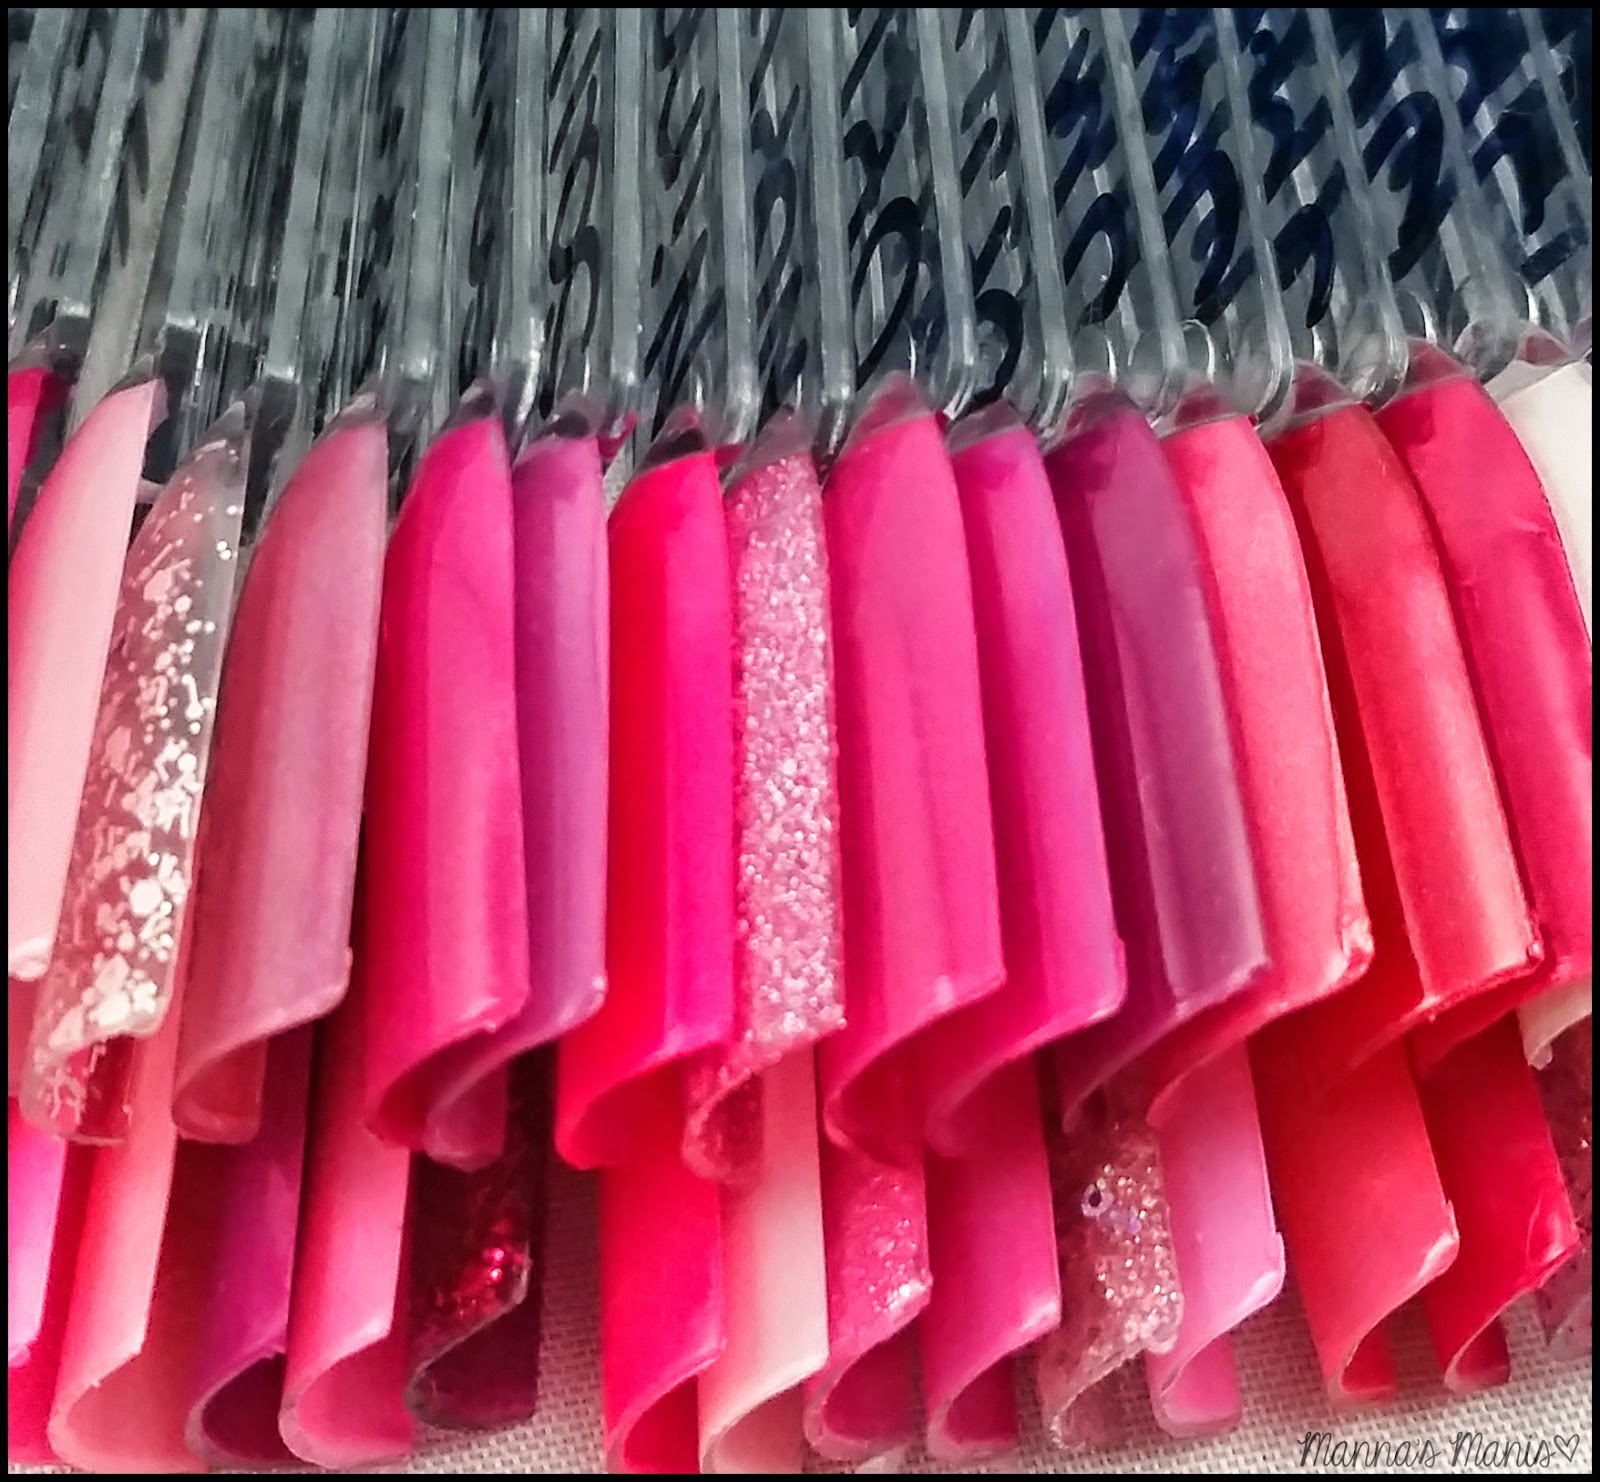 pink swatch sticks